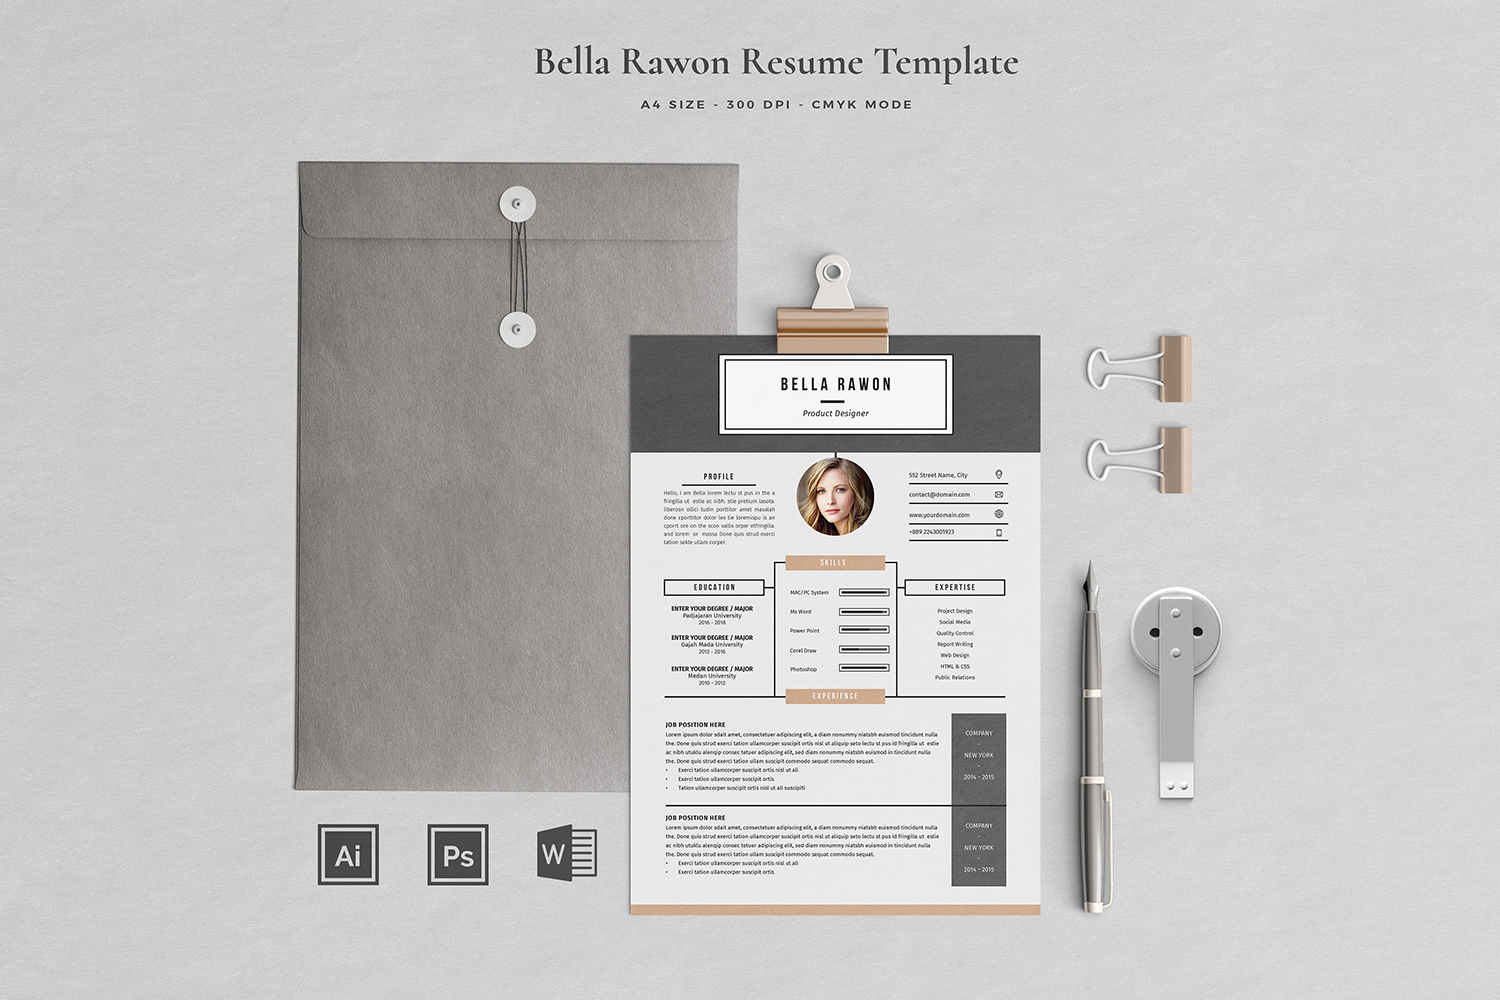 Job Seeker's Resume Bundle example image 4